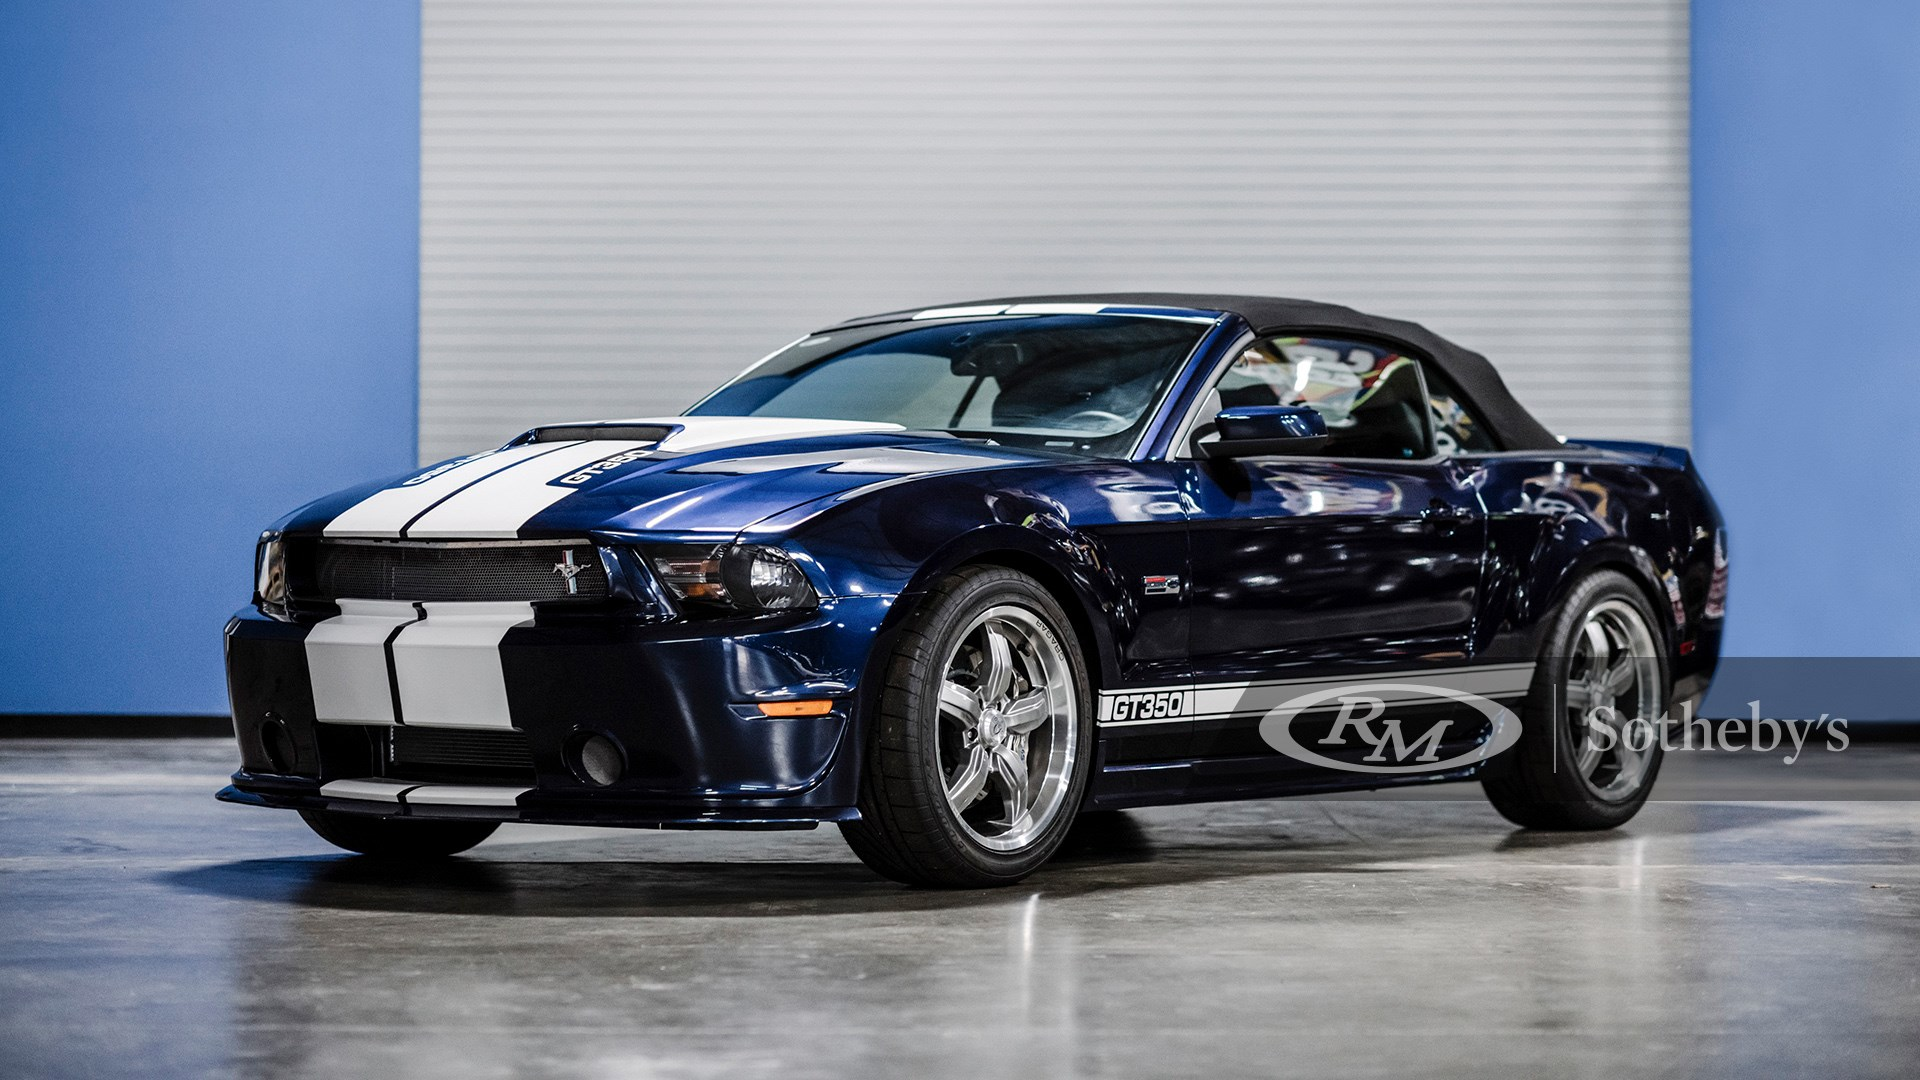 RM Sotheby's Arizona Scottsdale 2021, Blog, 2012 Ford Shelby GT350 Convertible